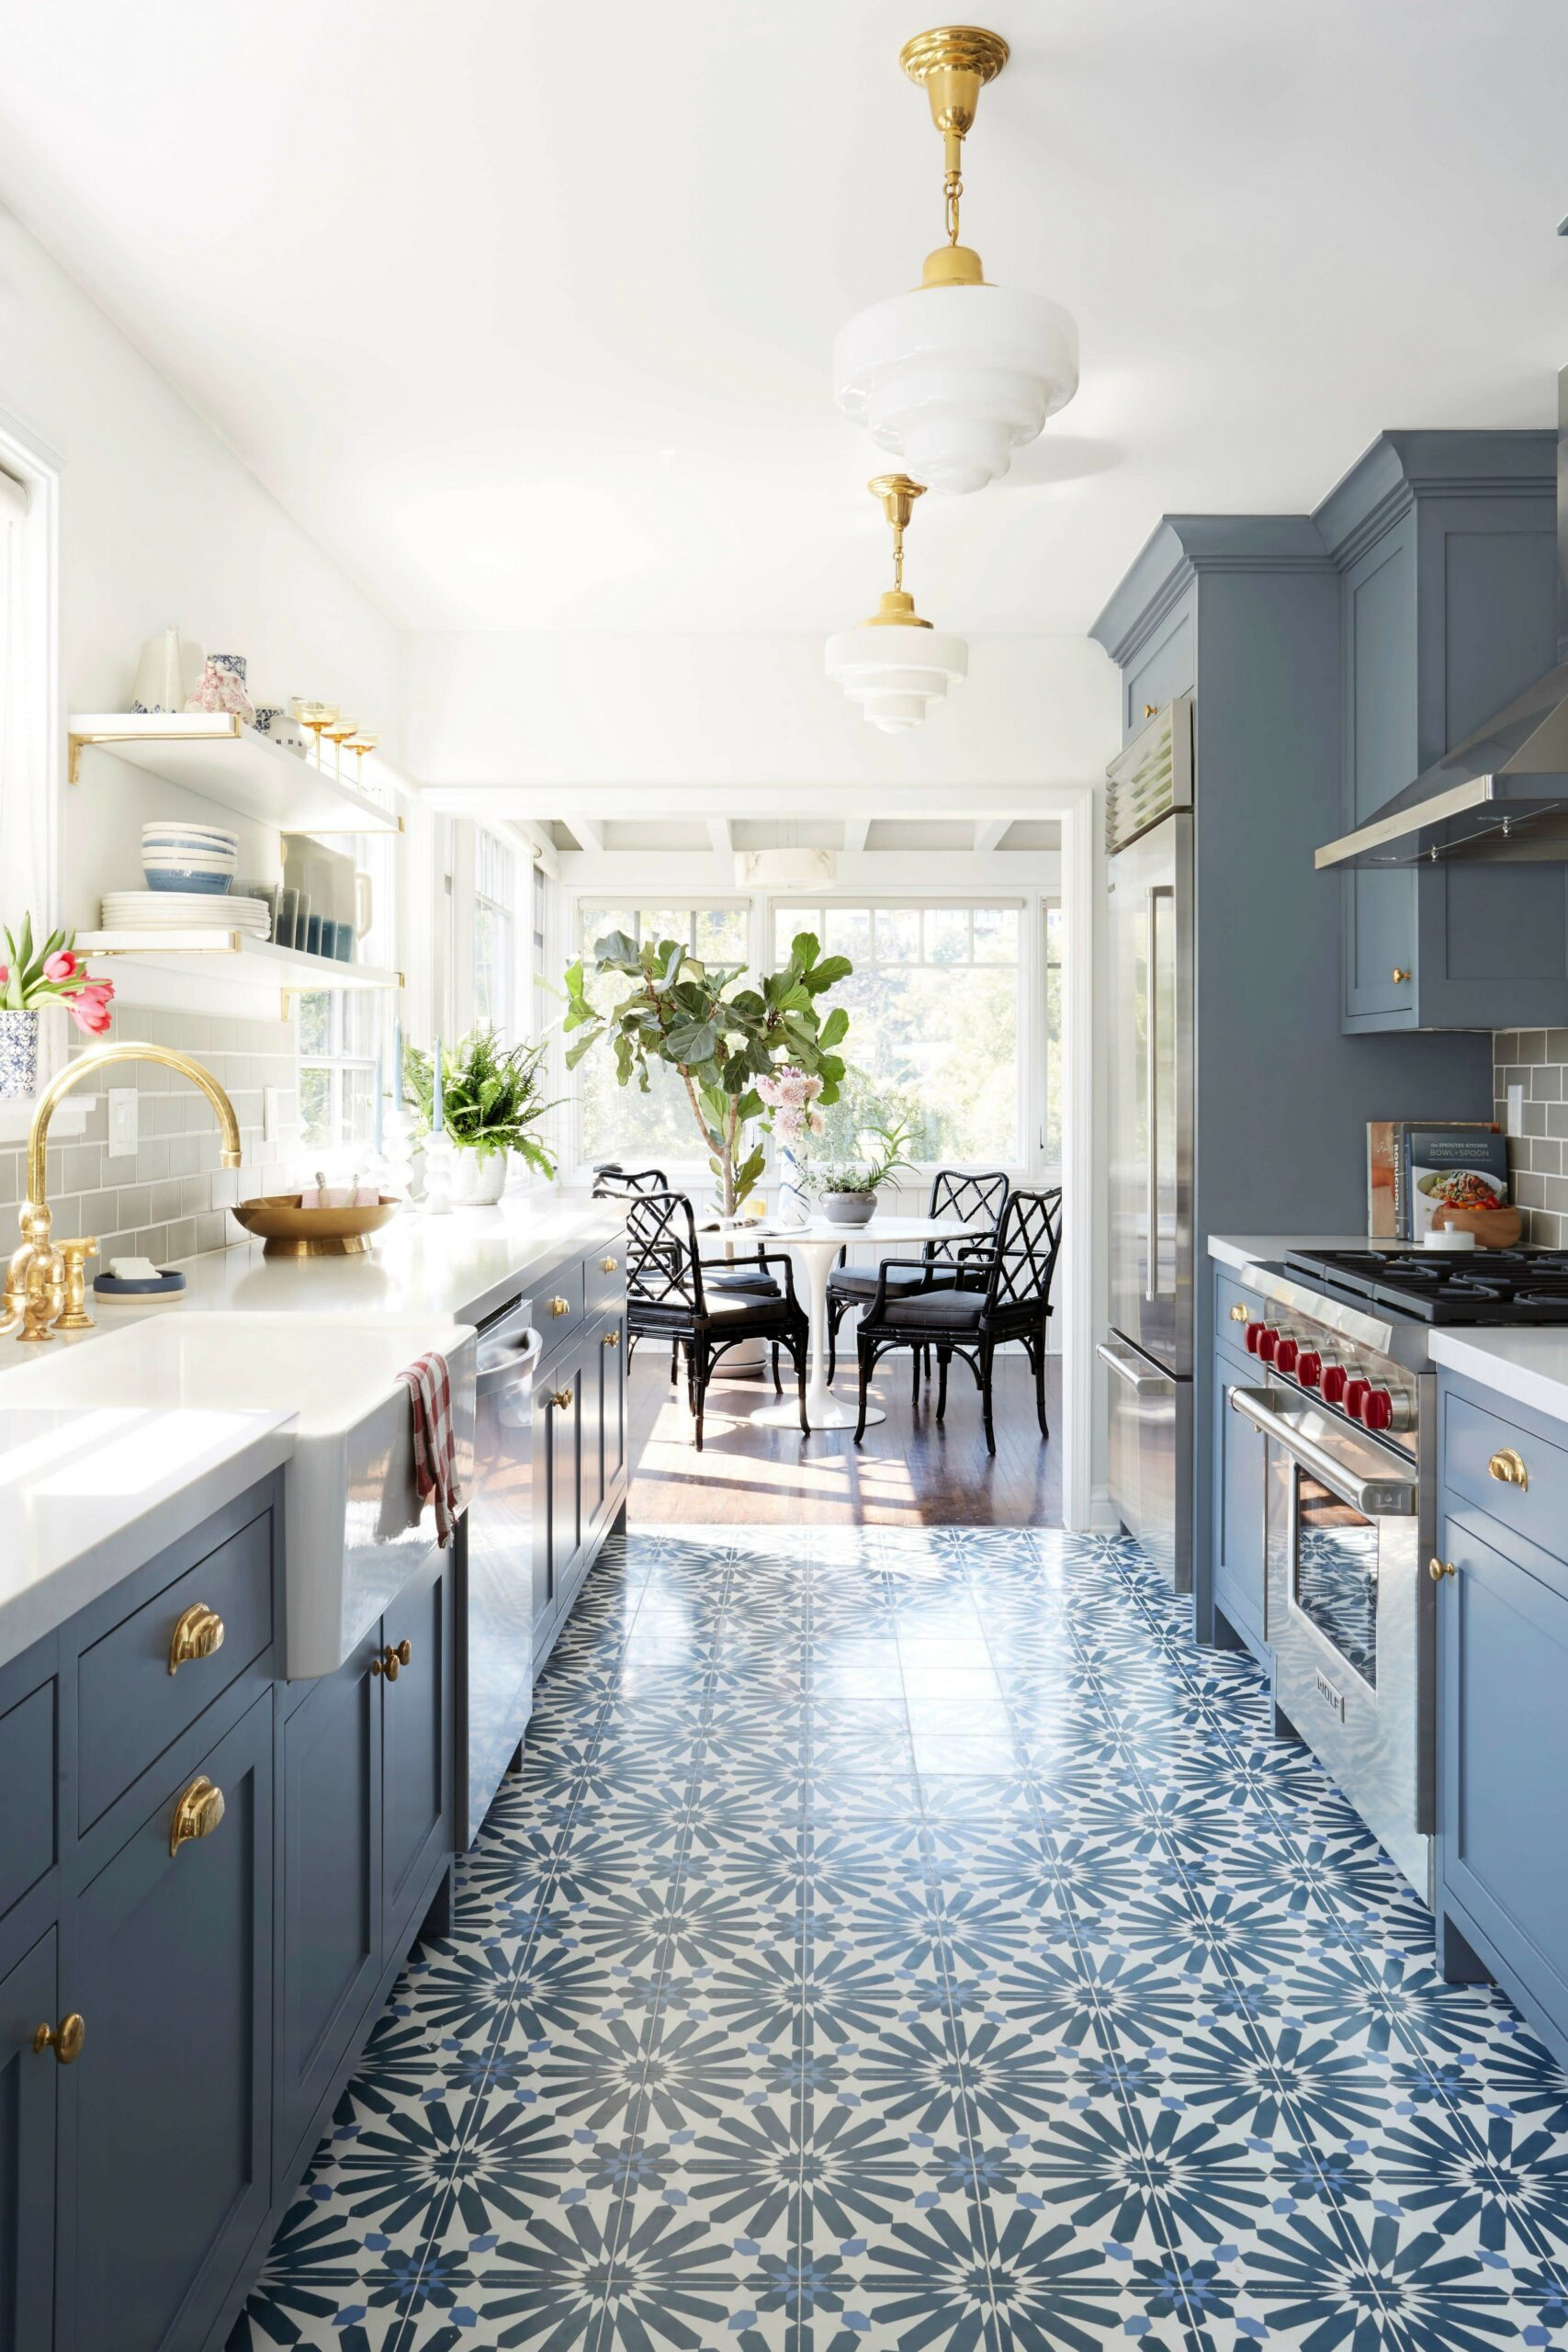 86 Some Small Kitchen Ideas To Help You Do Up Your Kitchen 36